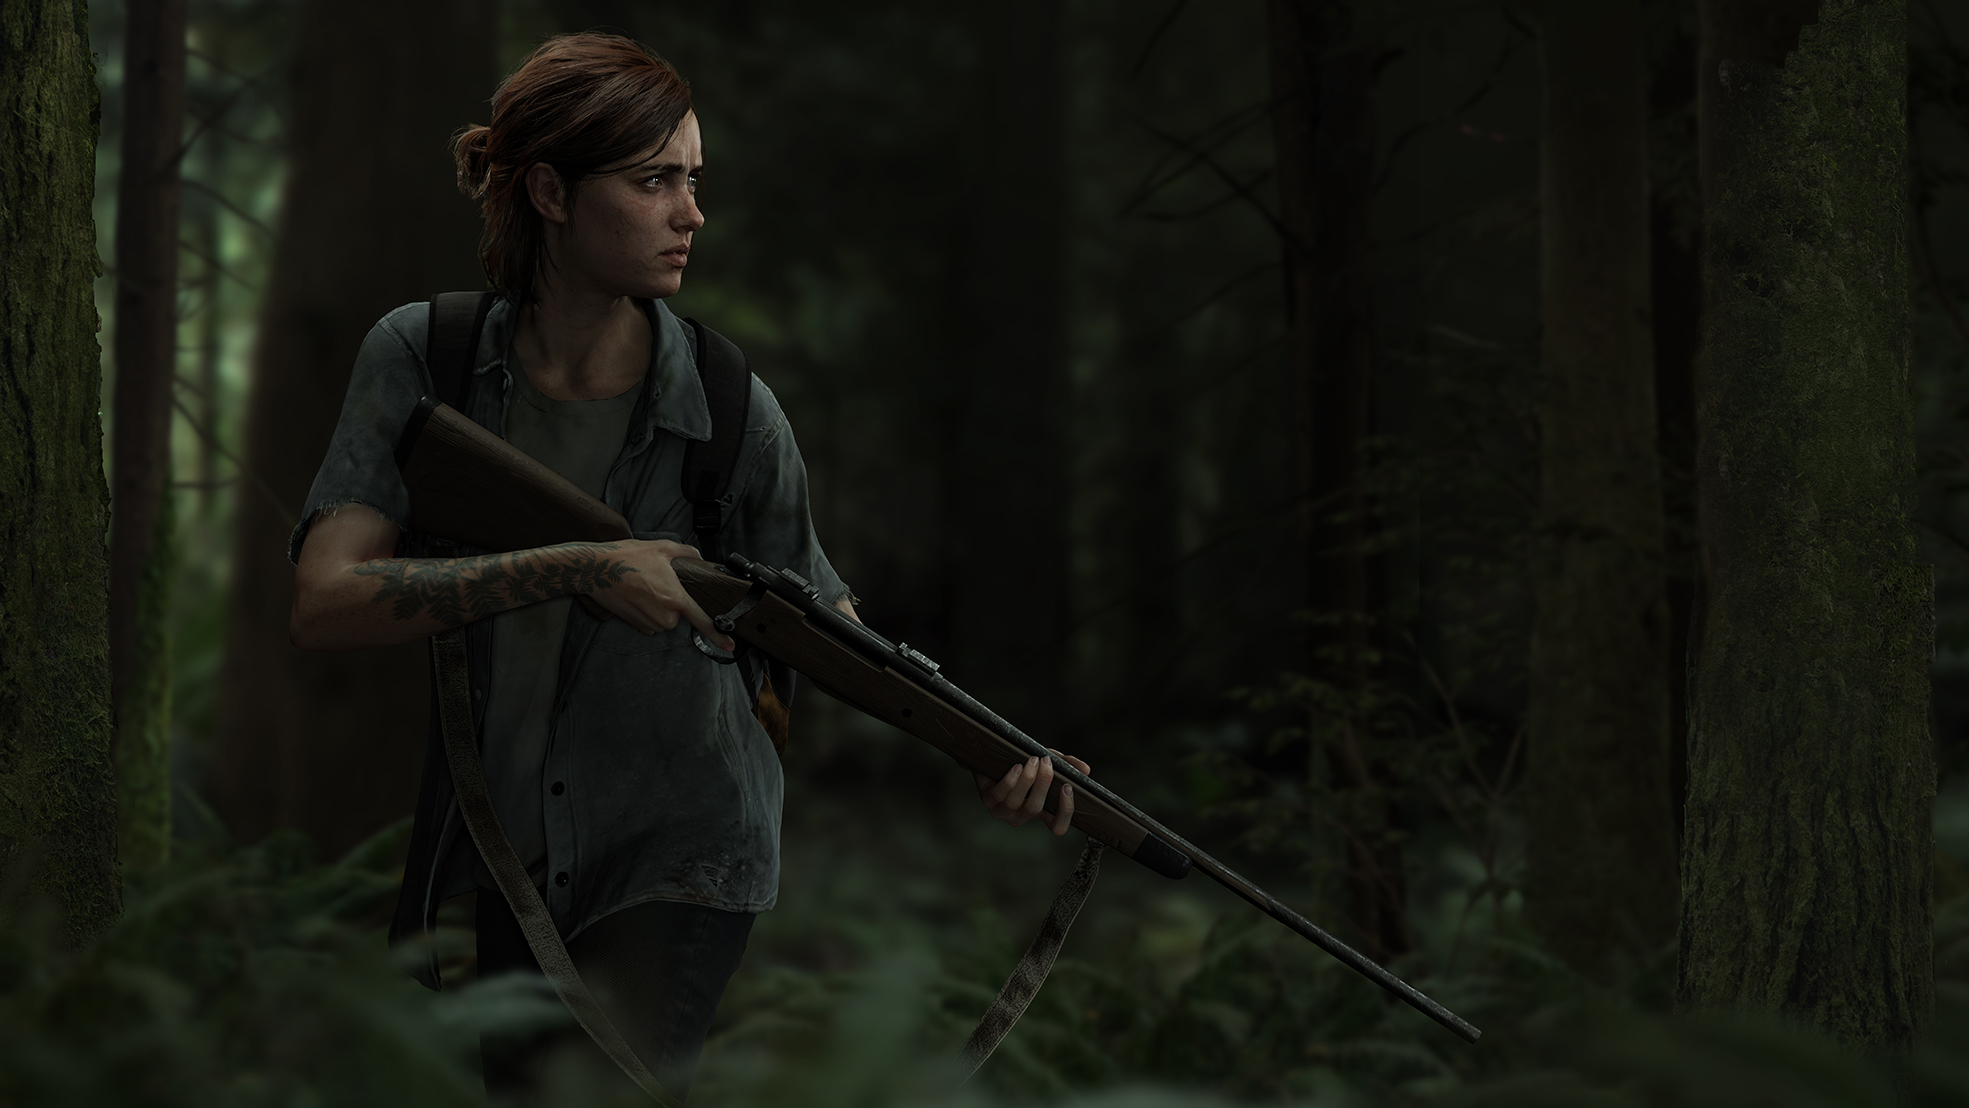 Last Of Us II Leaker Didn't Work At Naughty Dog, Sony Says